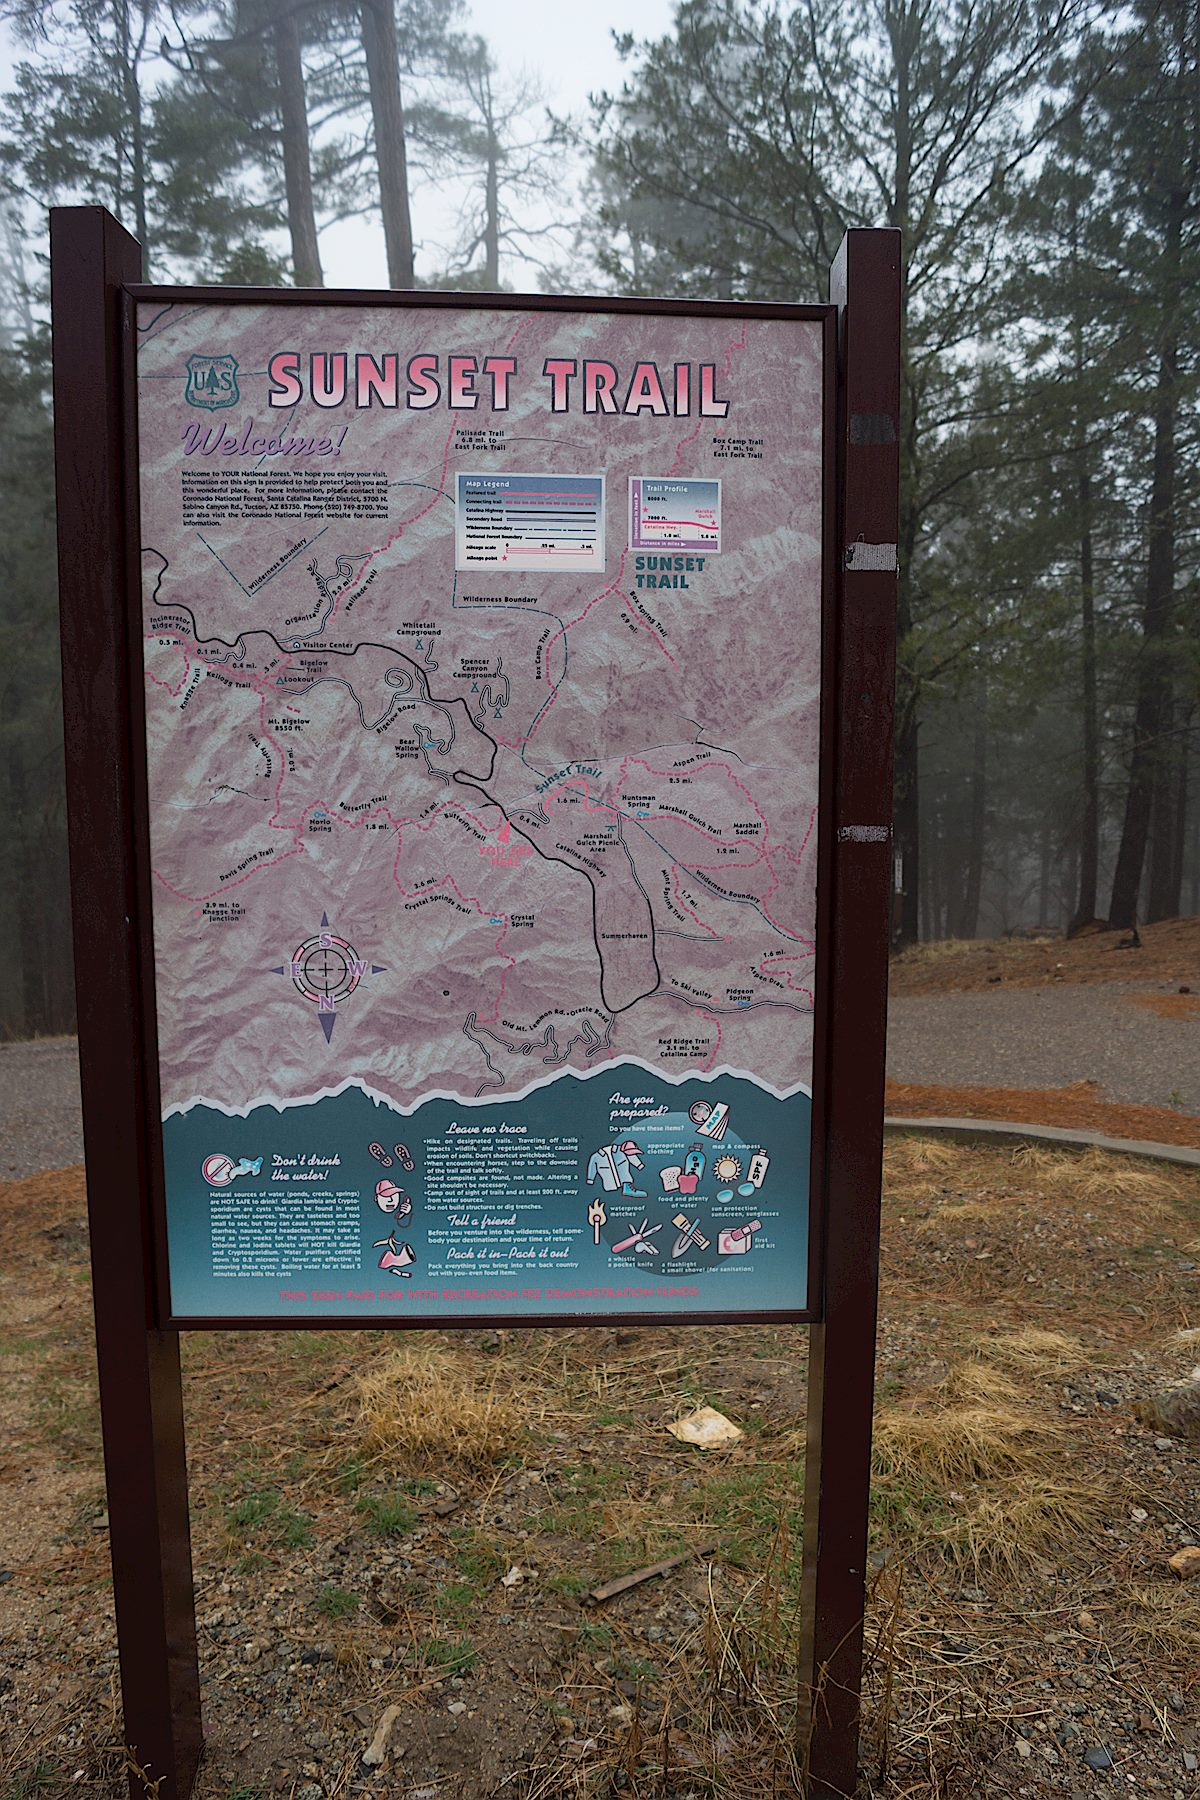 Sunset Trail Trail Map sign. March 2014.